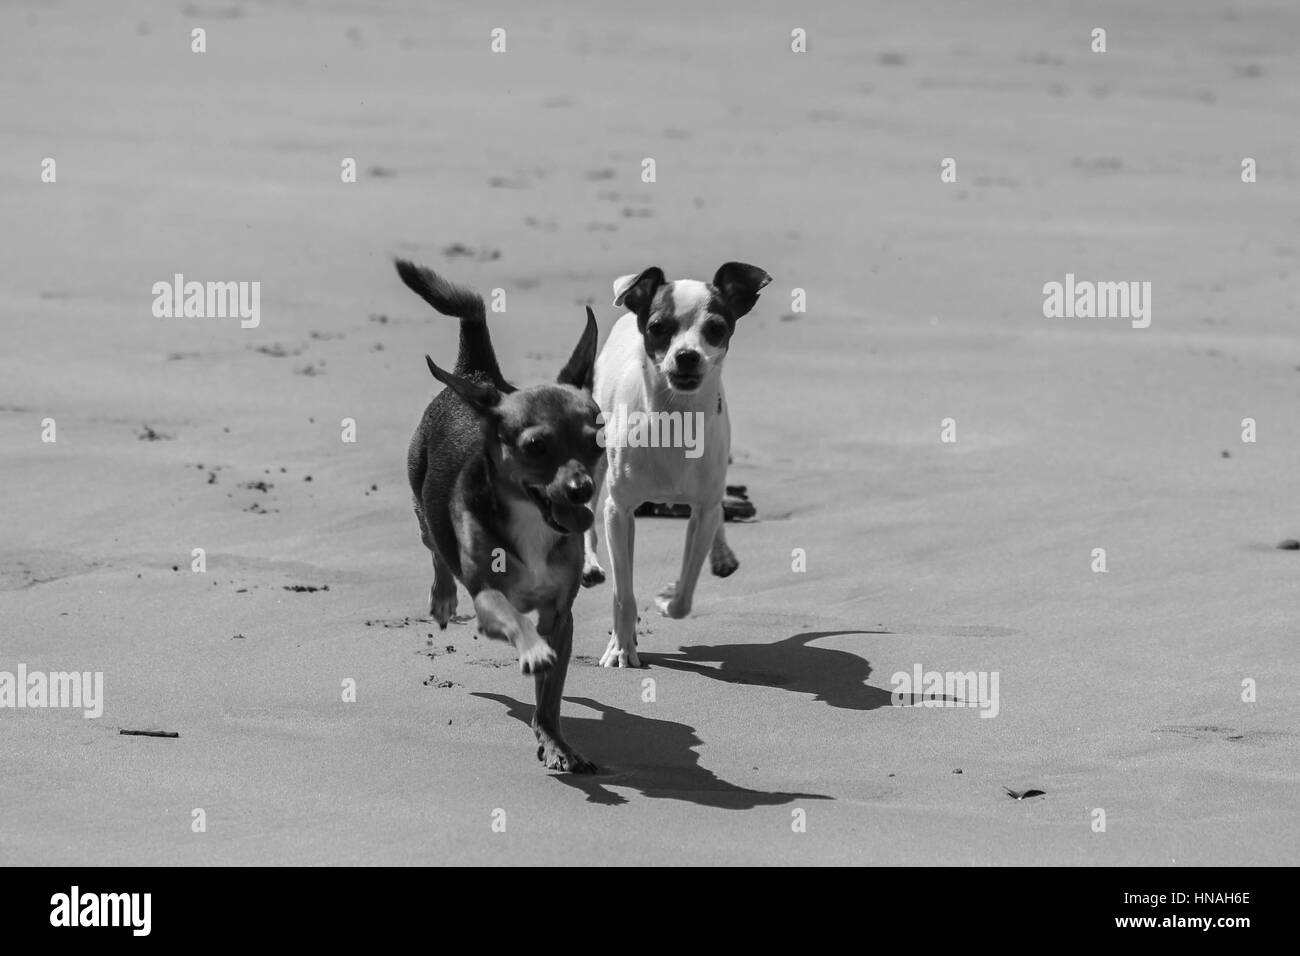 Small Jack Russell dog playing on a beach - Stock Image